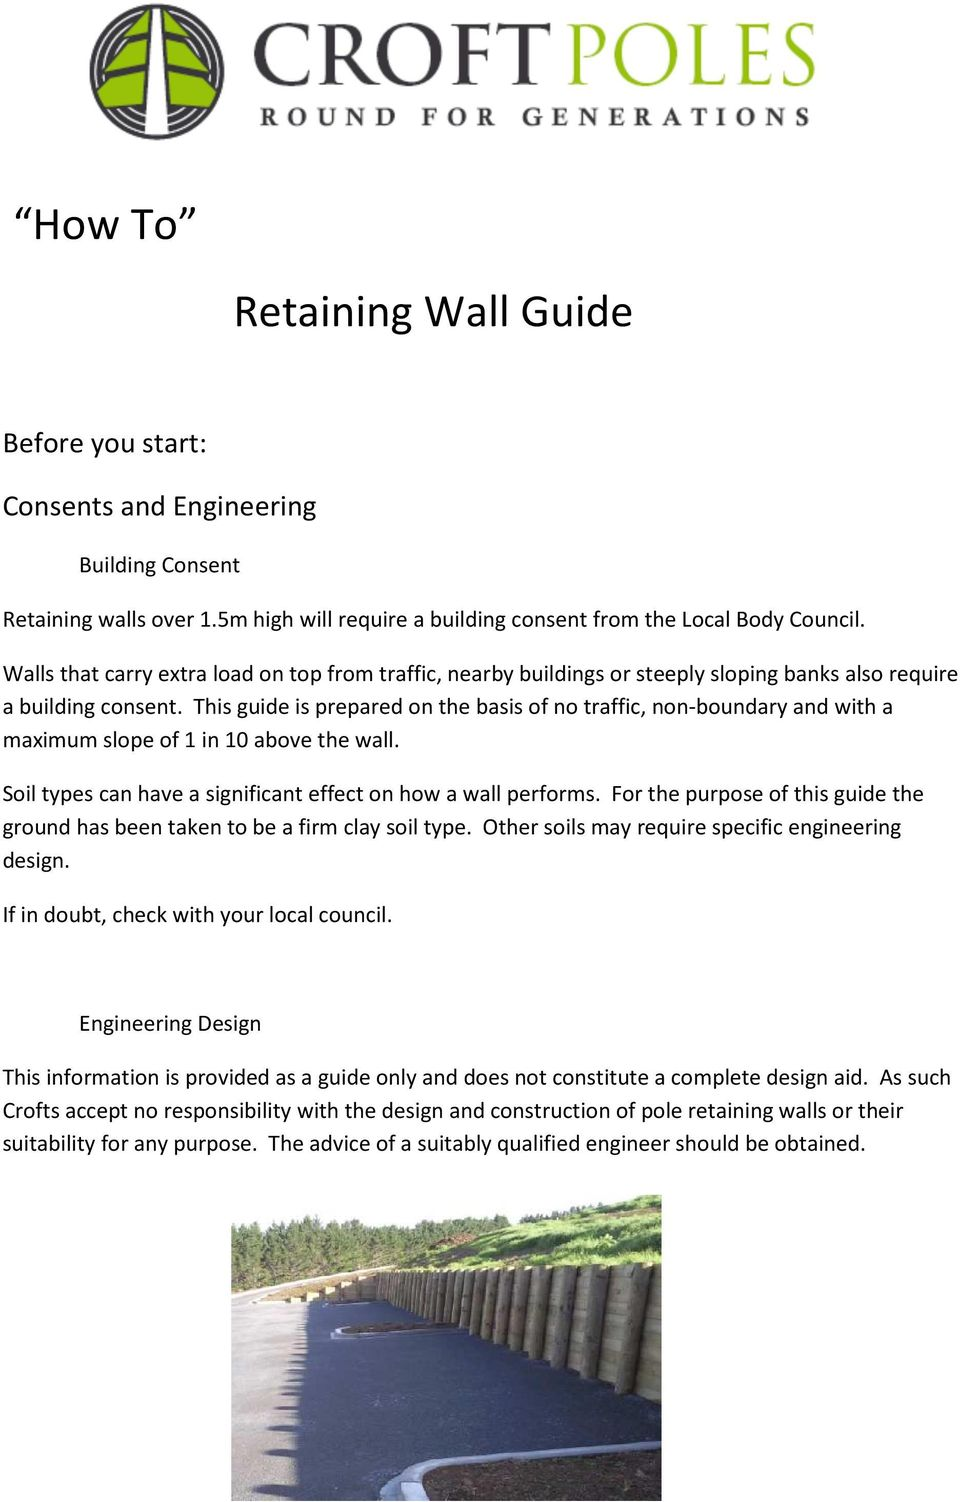 This guide is prepared on the basis of no traffic, non-boundary and with a maximum slope of 1 in 10 above the wall. Soil types can have a significant effect on how a wall performs.